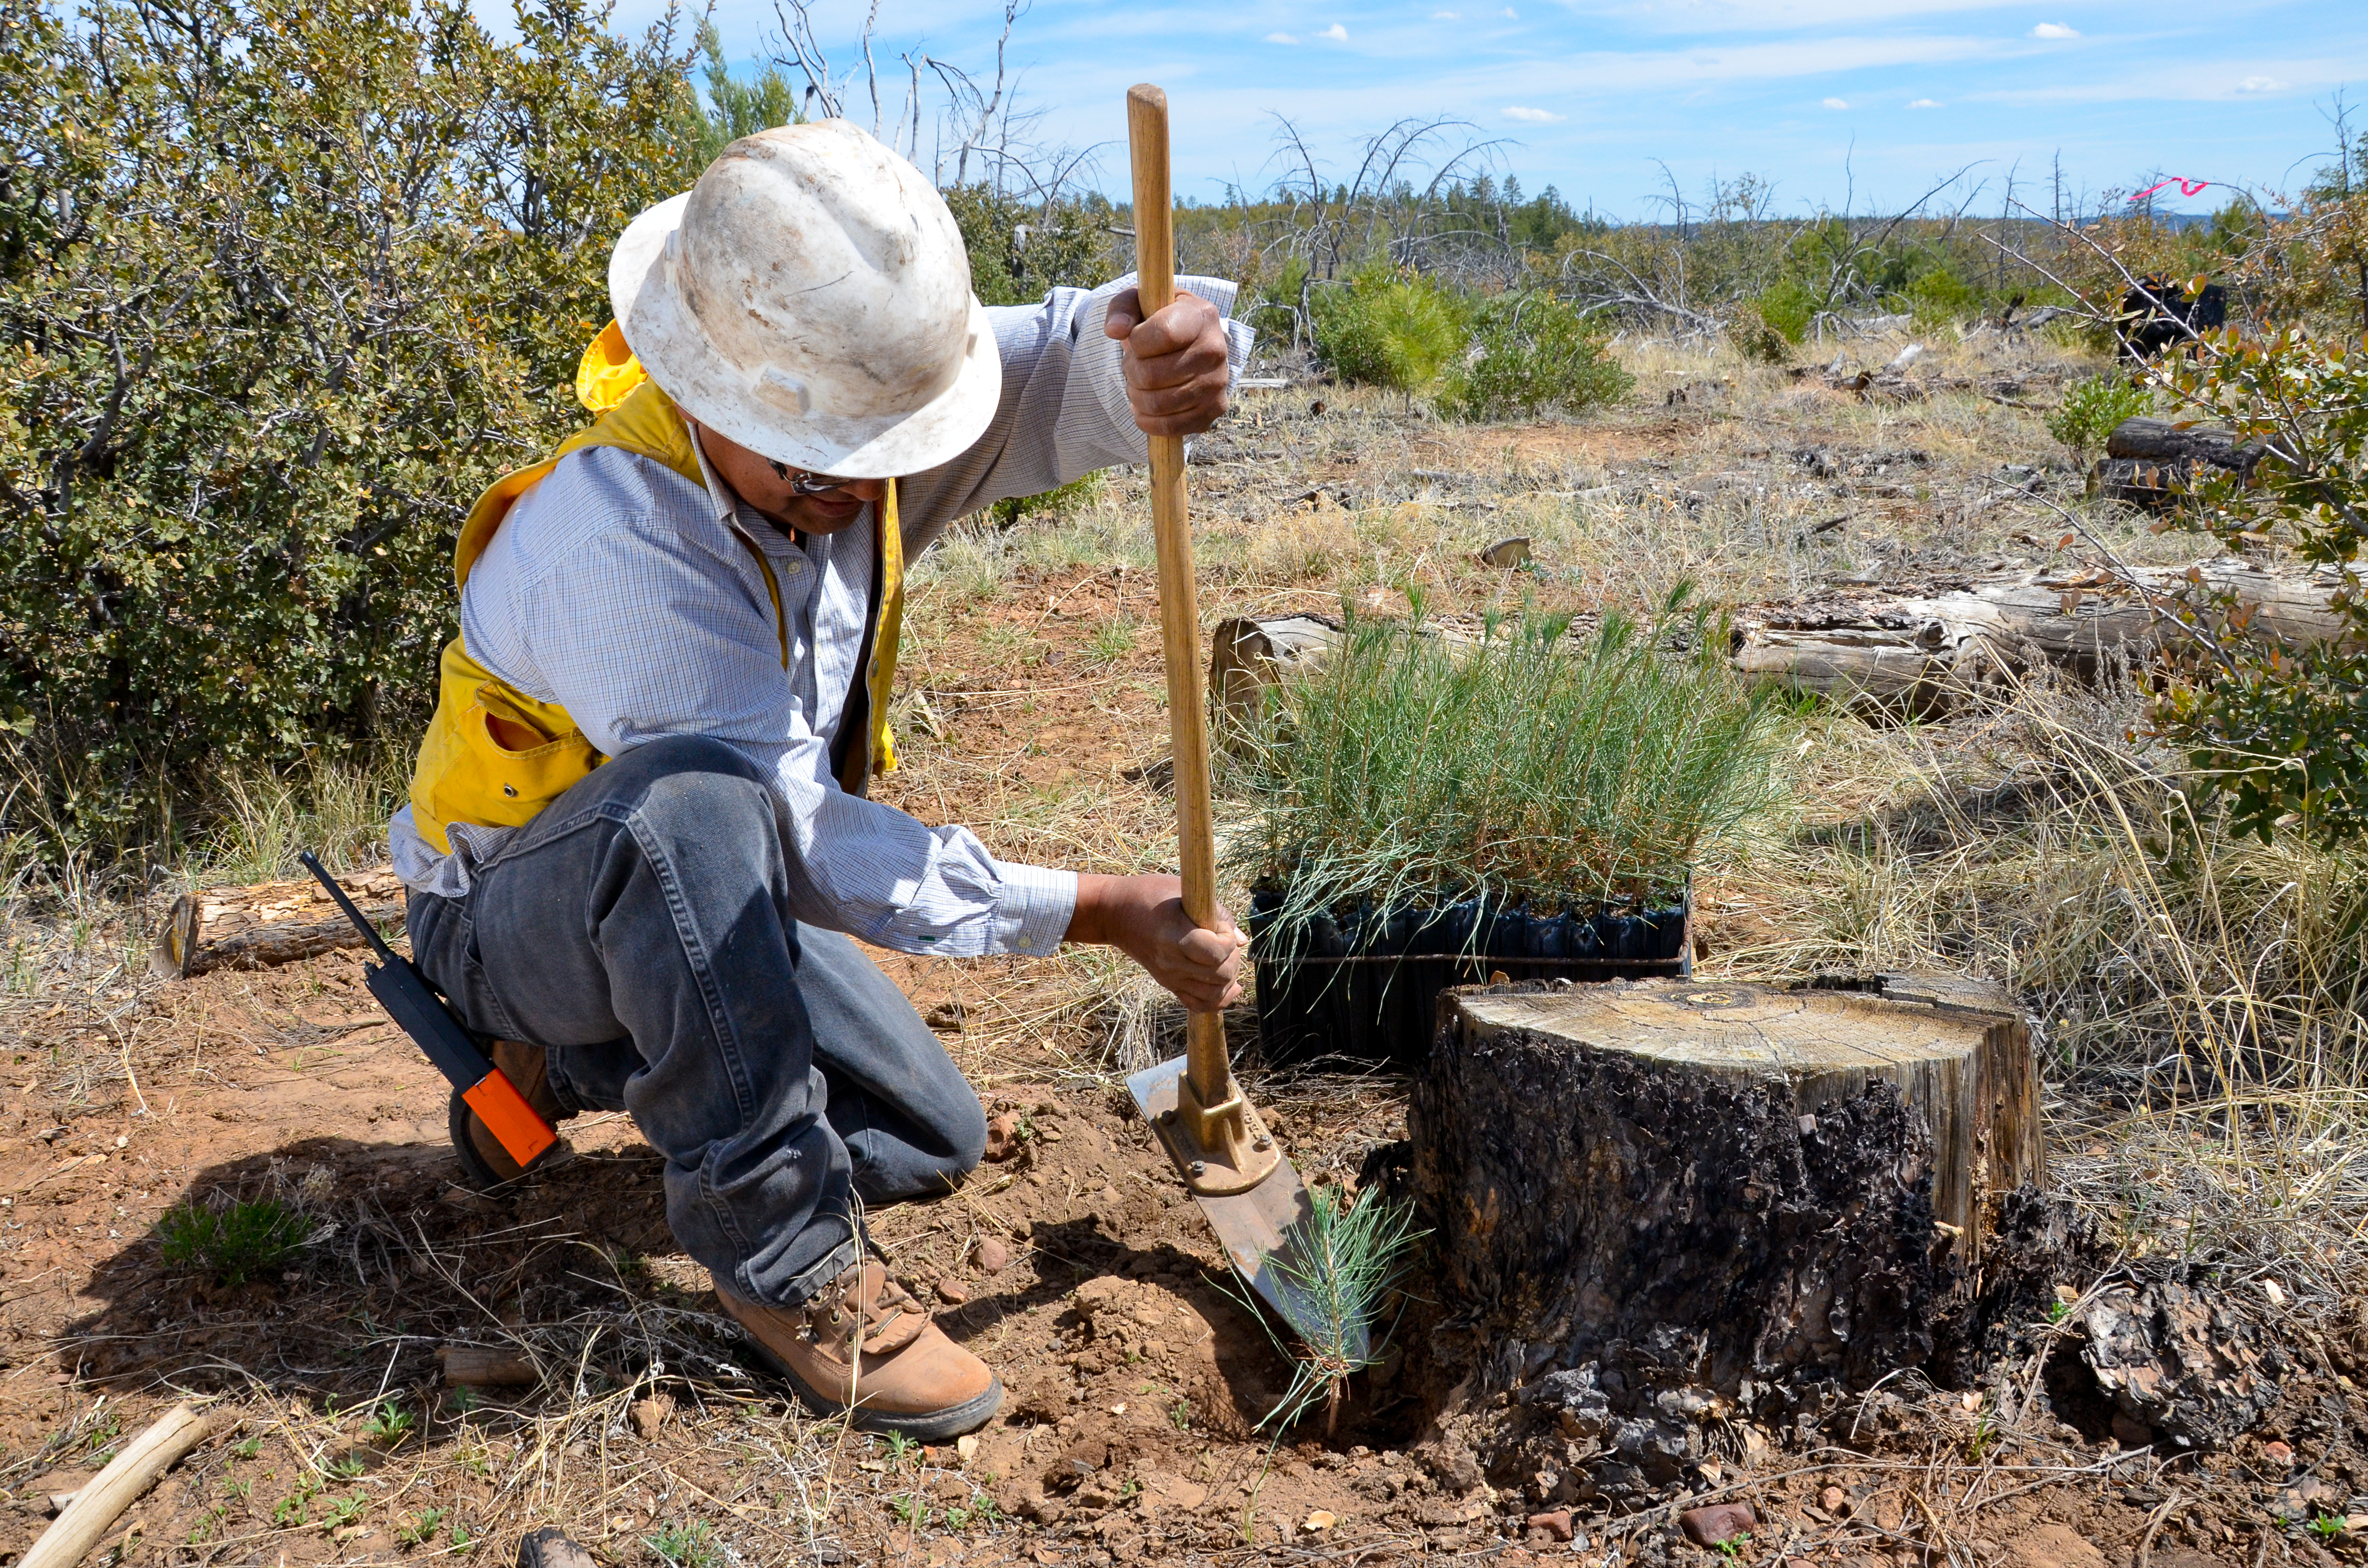 Mack Nosie, with the White Mountain Apache Tribe forestry department, uses a hoedad to dig a hole fo